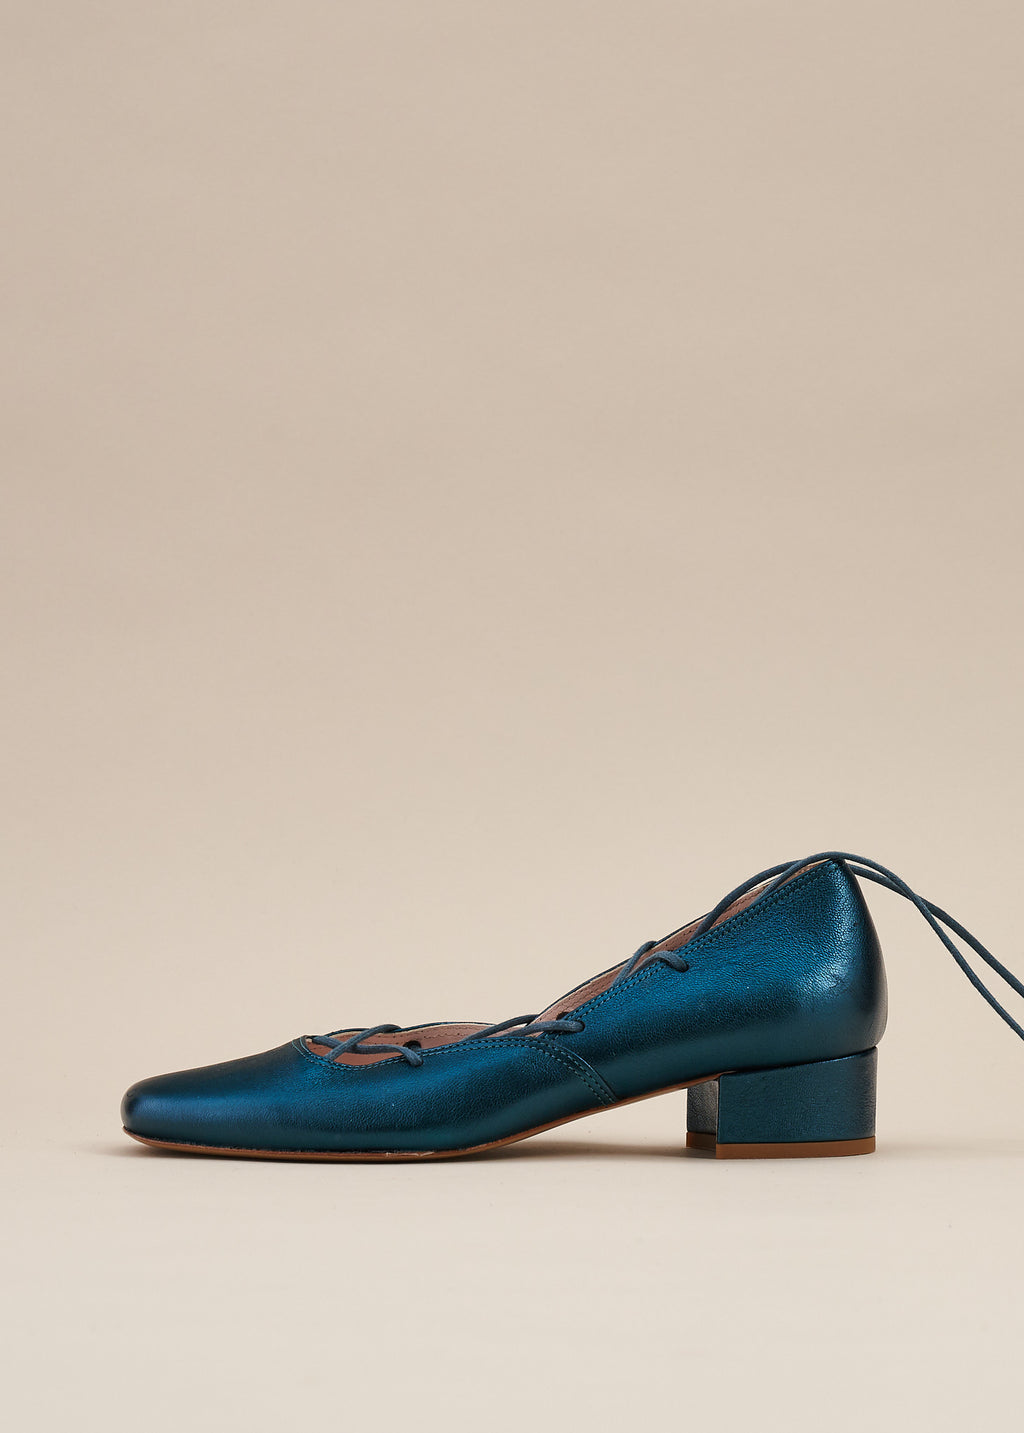 Elinor Teal Metallic Leather Lace-up Ballerina Pump- LAST PAIRS SIZES 38 & 40